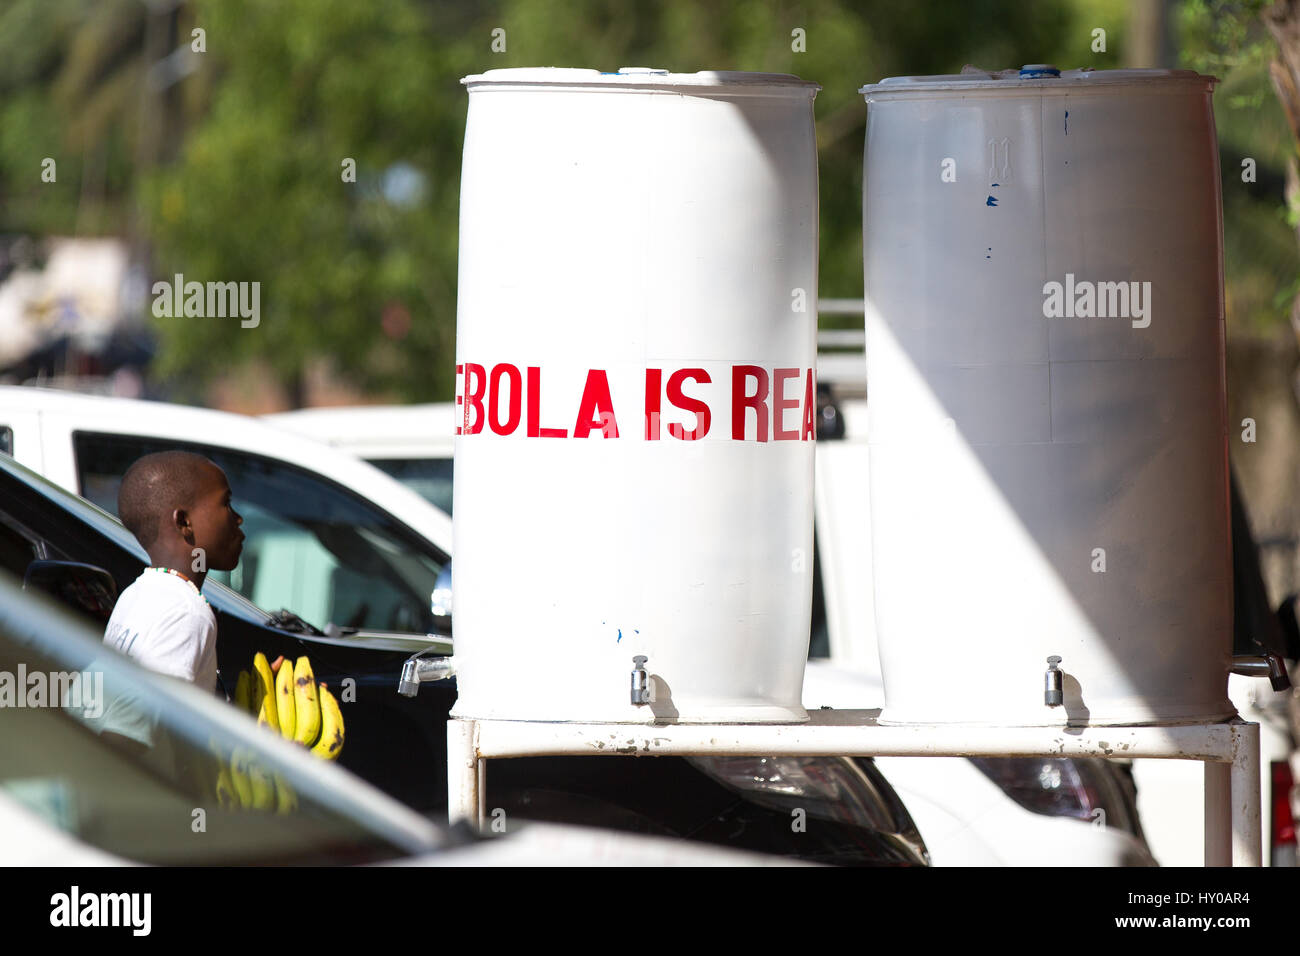 Liberia has successfully marketed the message that Ebola is Real through a multitude of posters, paintings, canvassing, - Stock Image